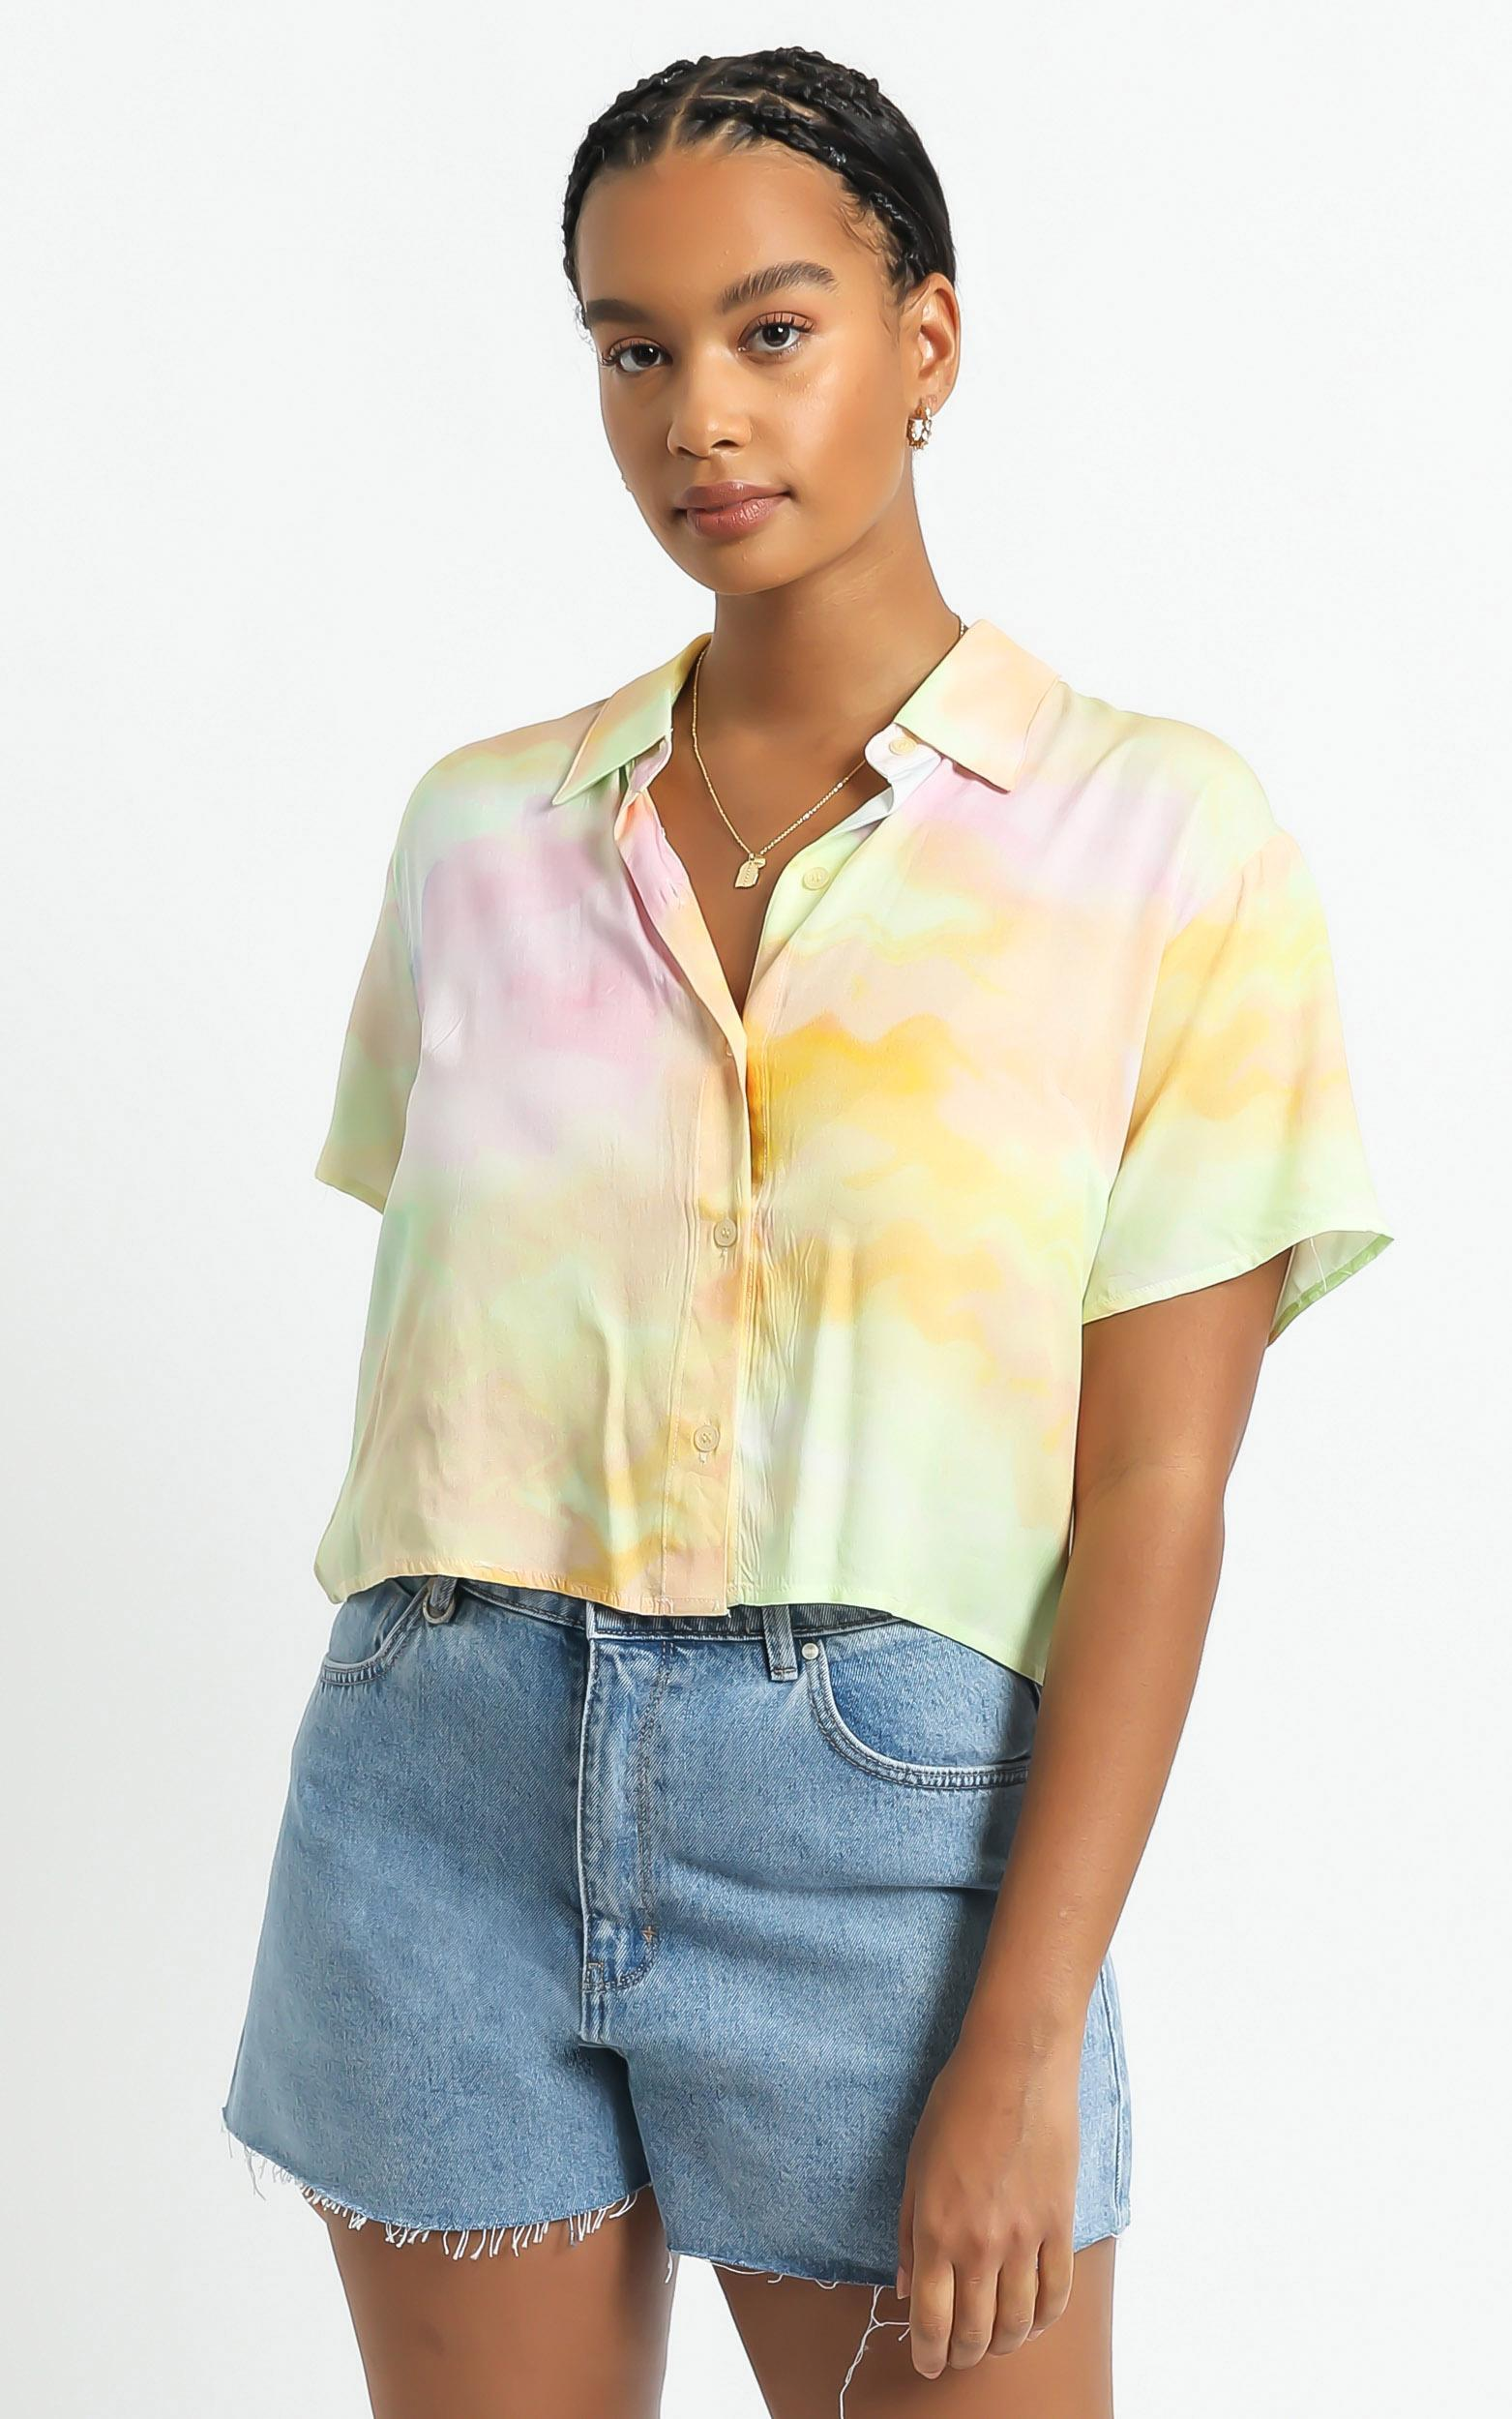 Astra Stars Shirt in Yellow Tie Dye - 06, YEL2, hi-res image number null